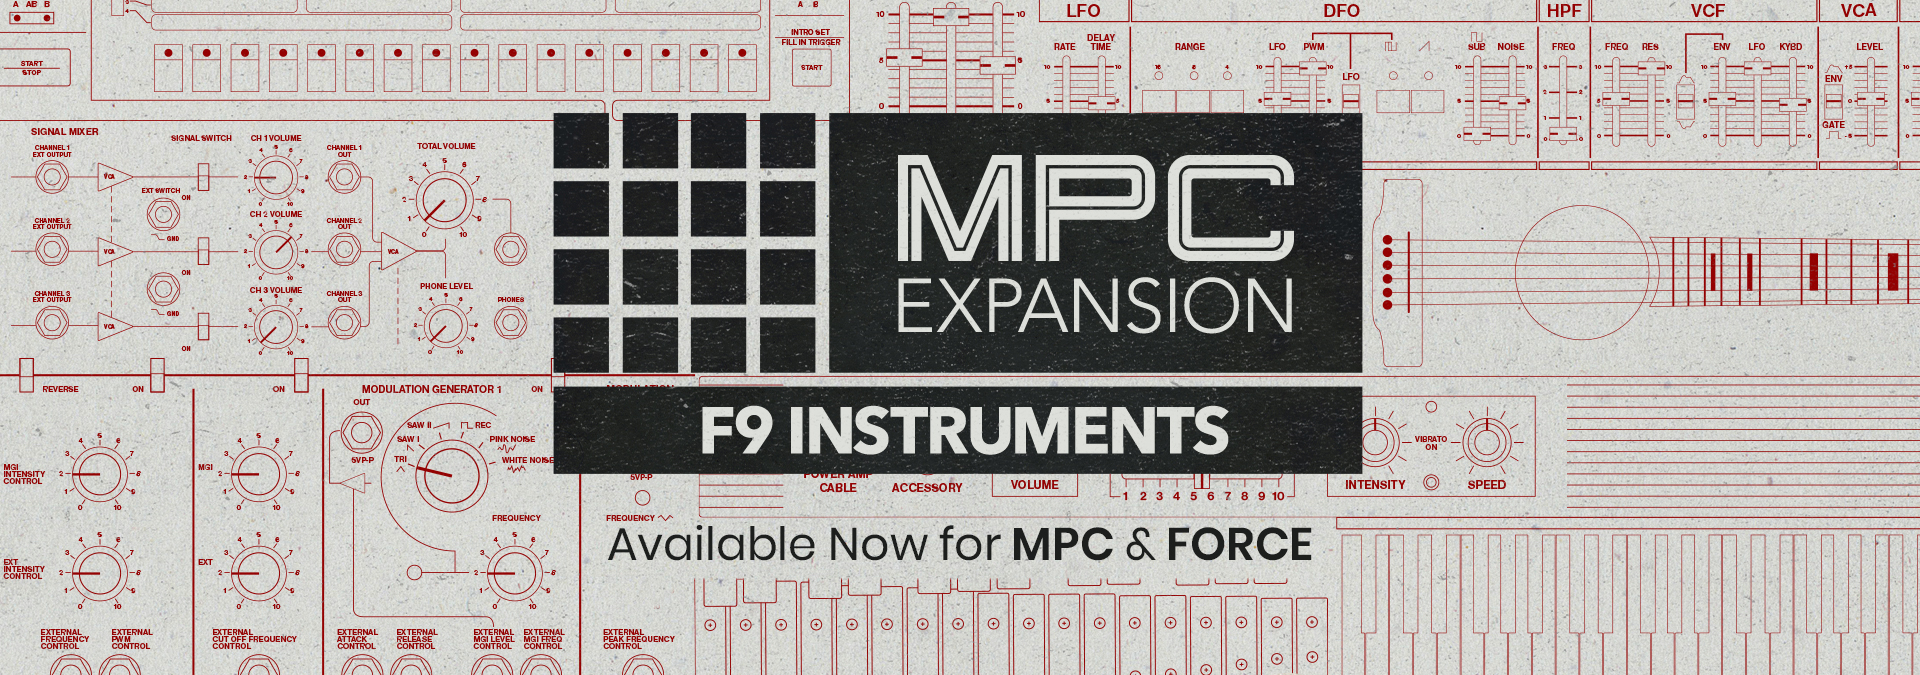 F9 Instruments Expansion